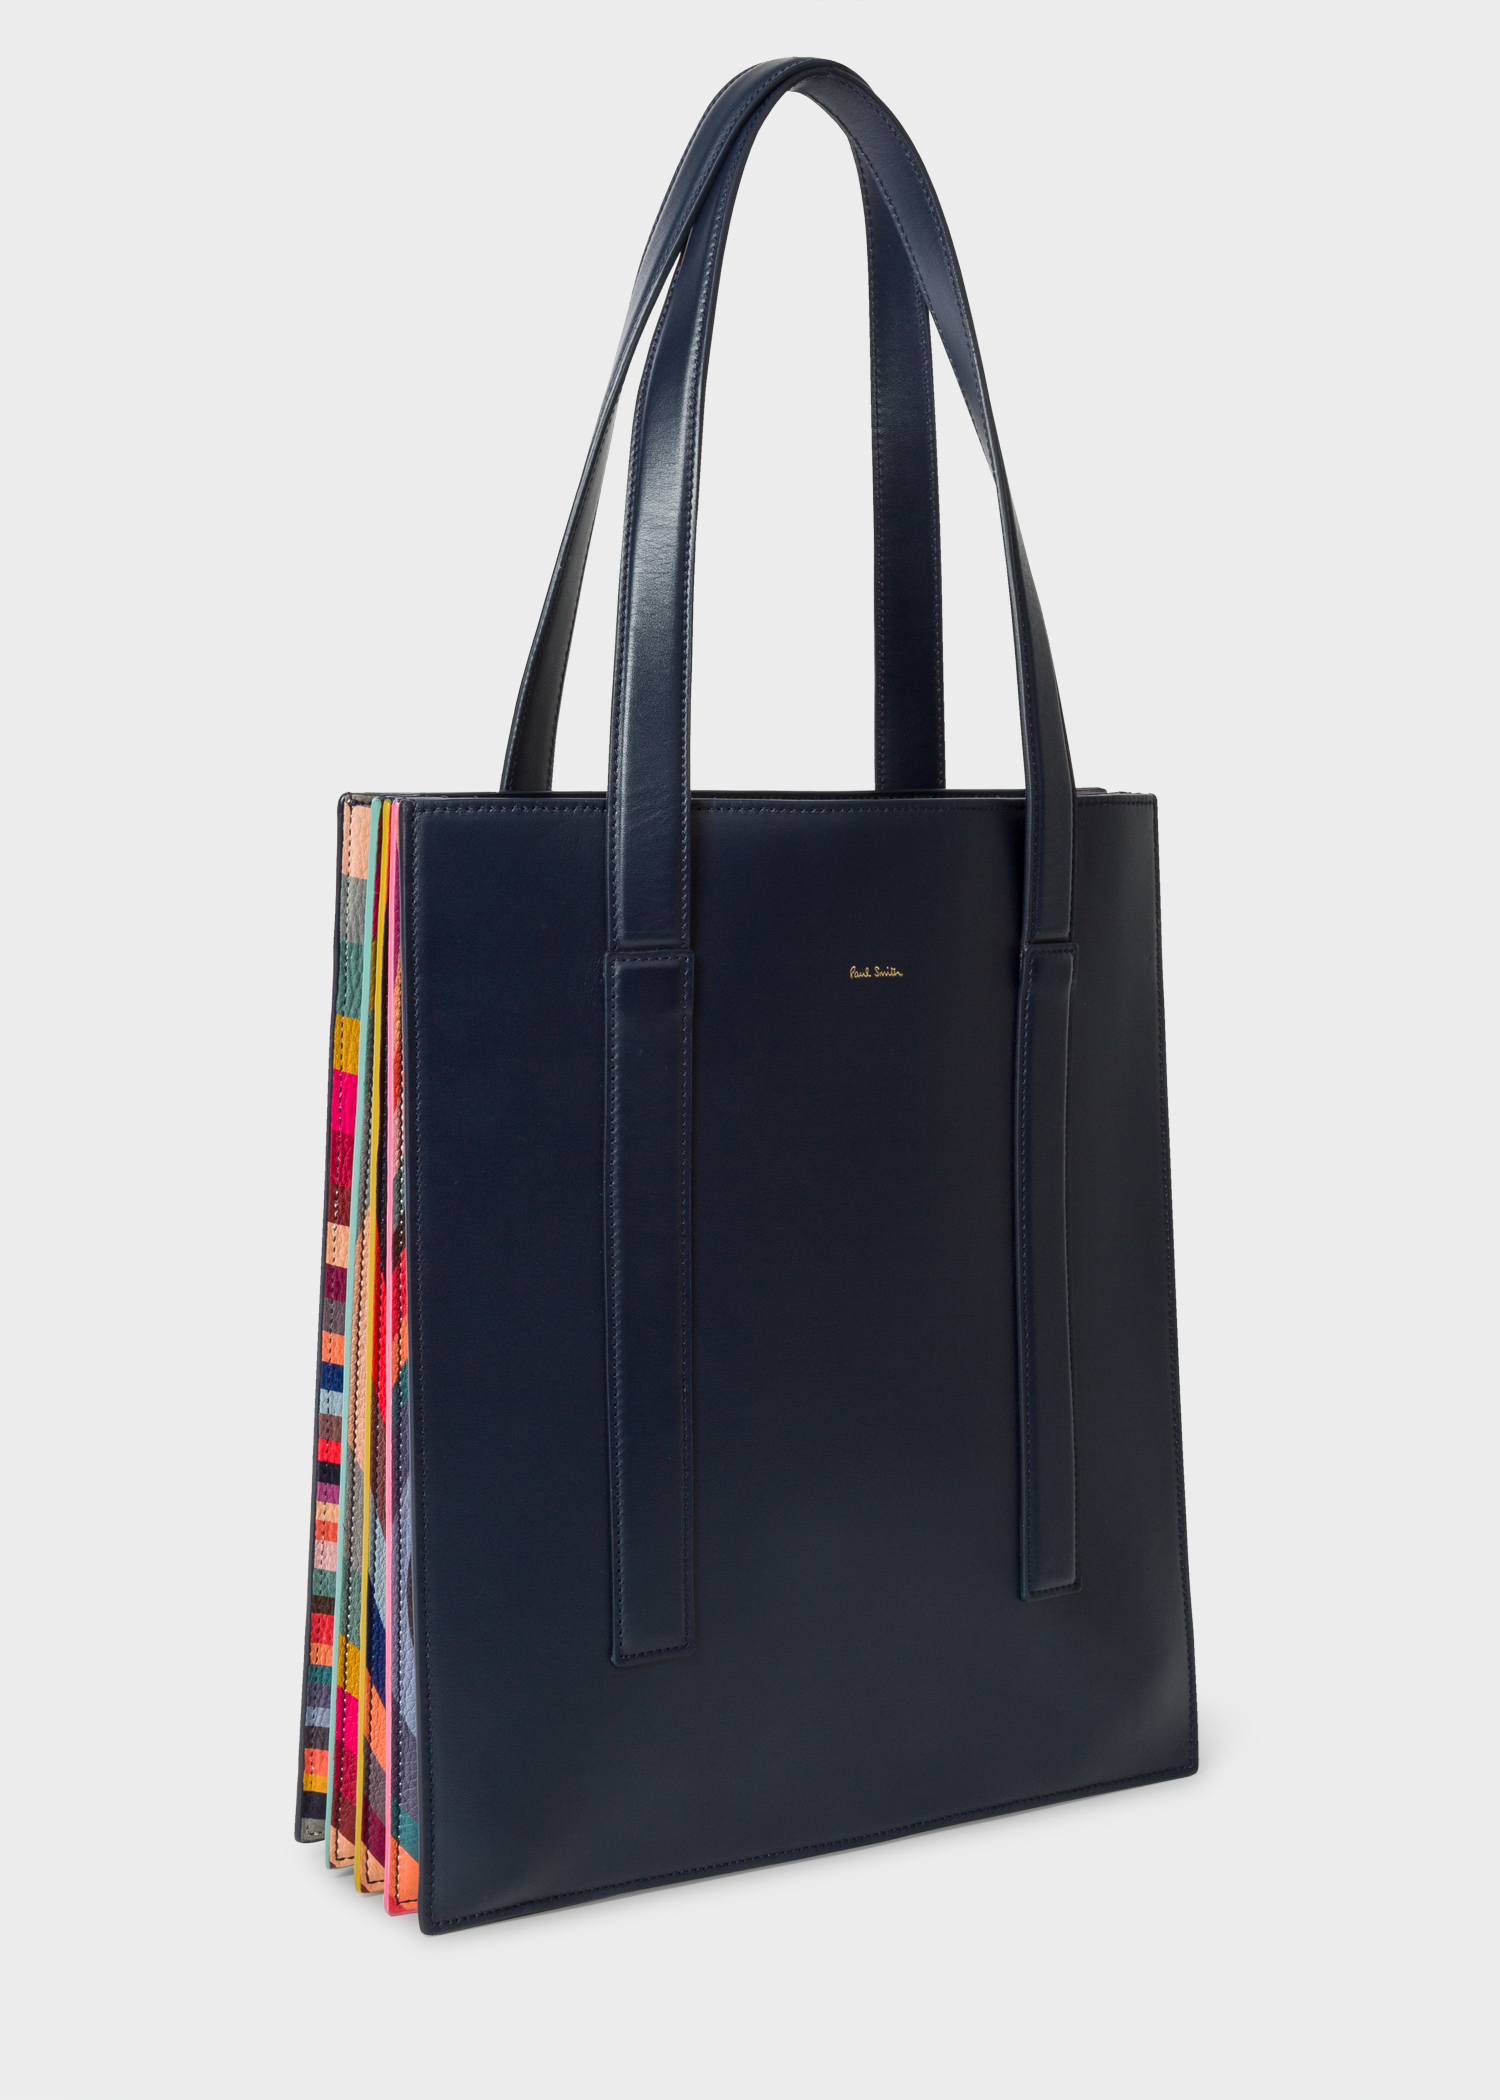 a80249063 Women's Navy 'Concertina Swirl' Leather Tote Bag - Paul Smith Asia